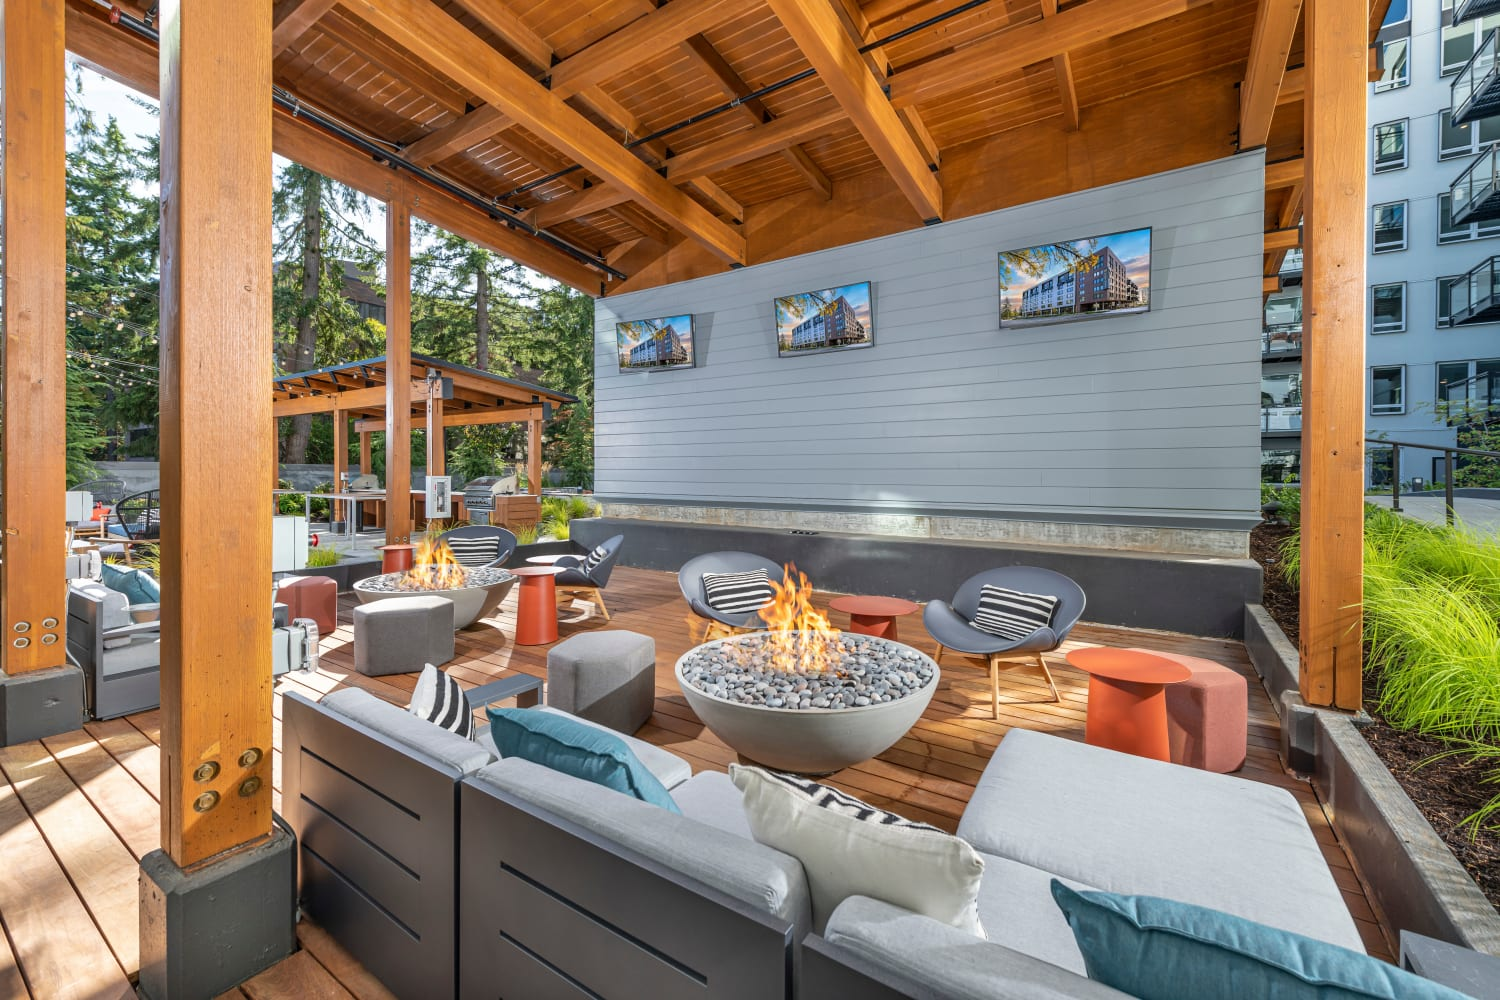 Outdoor lounge with TVs at Nightingale in Redmond, Washington